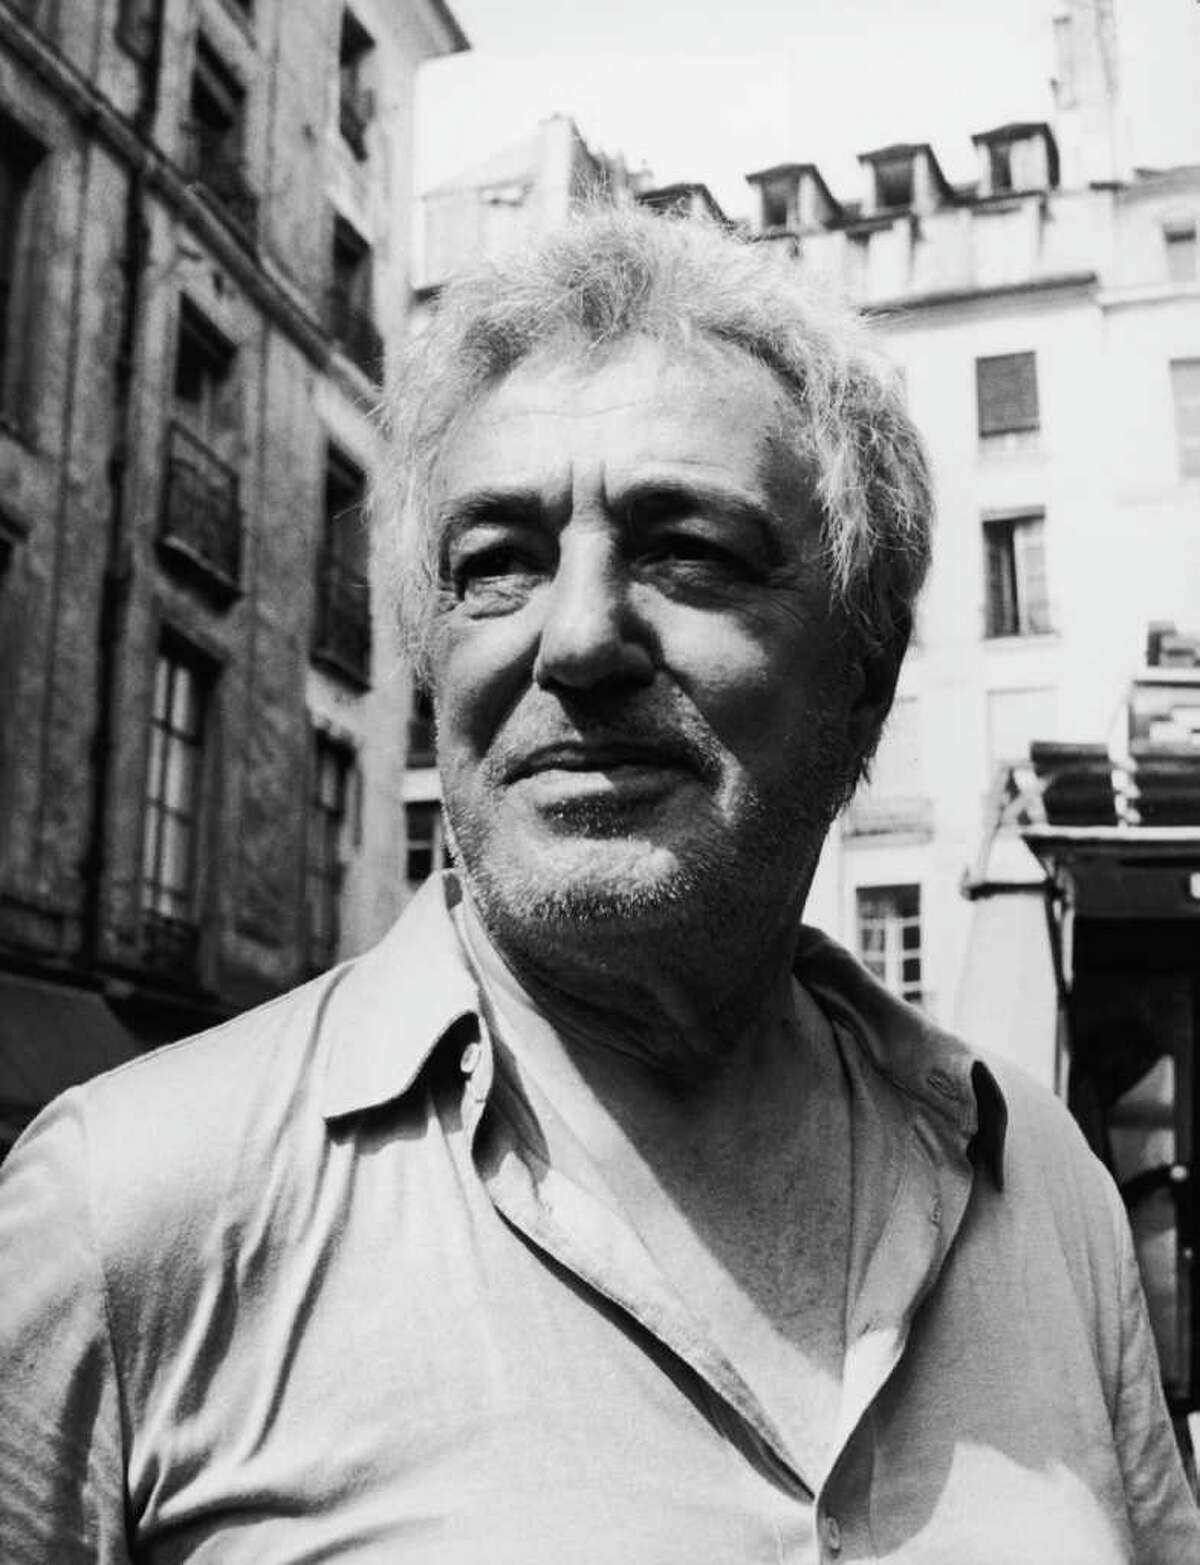 Italian actor-director Vittorio de Sica (1901 - 1974) filming 'L'Odeur des Fauves' ('Scandal Man') in St-Germain-des-Pres, Paris, 13th July 1971. He plays the character of Milord in the film. (Photo by Keystone/Hulton Archive/Getty Images)